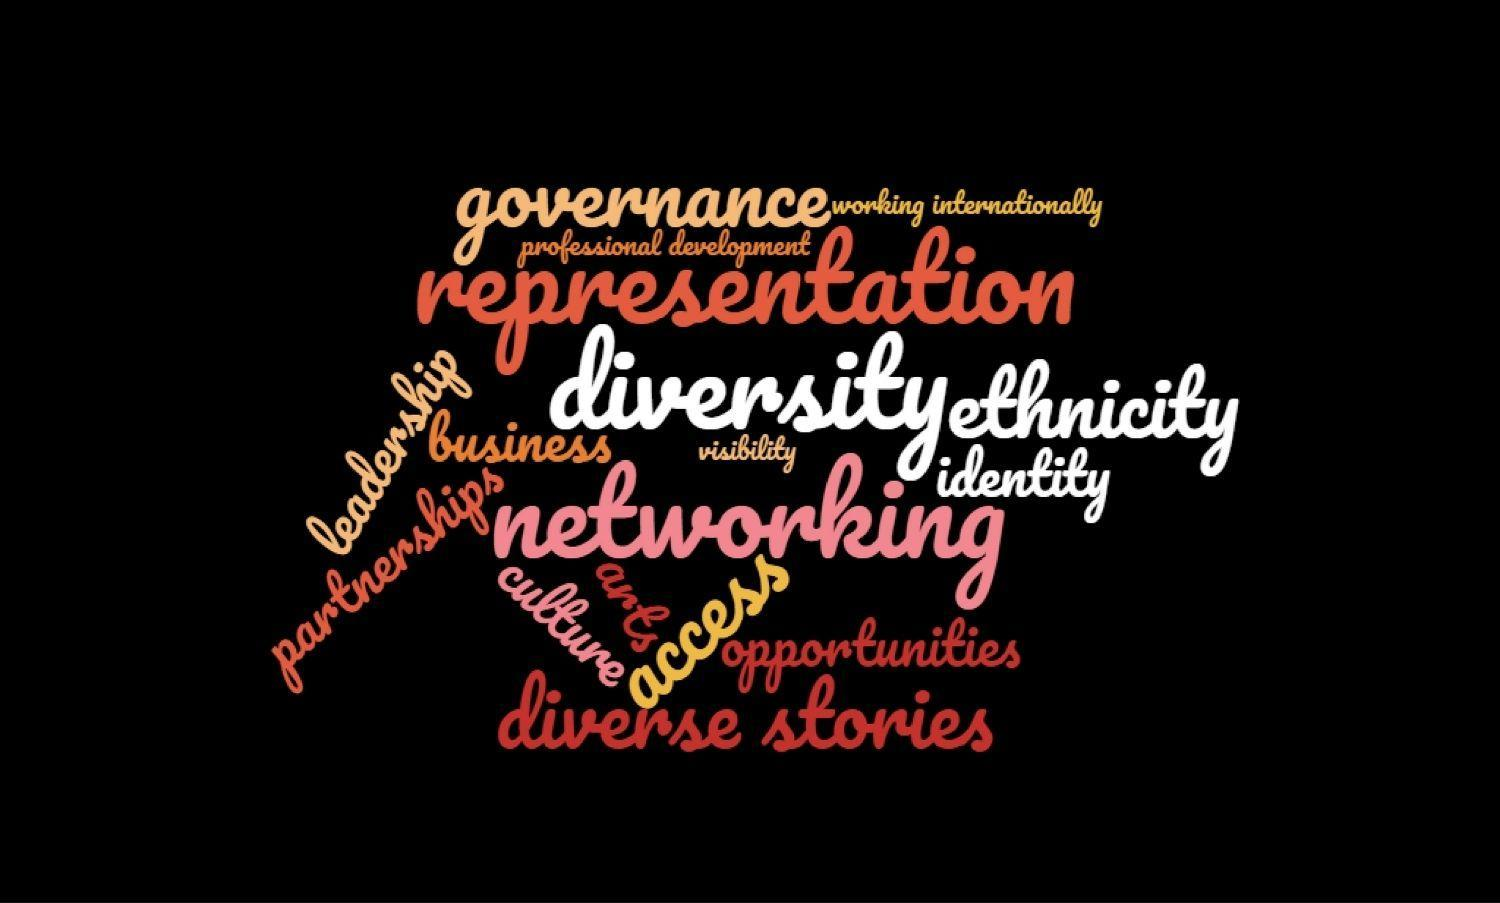 Word cloud for professional development training programme.